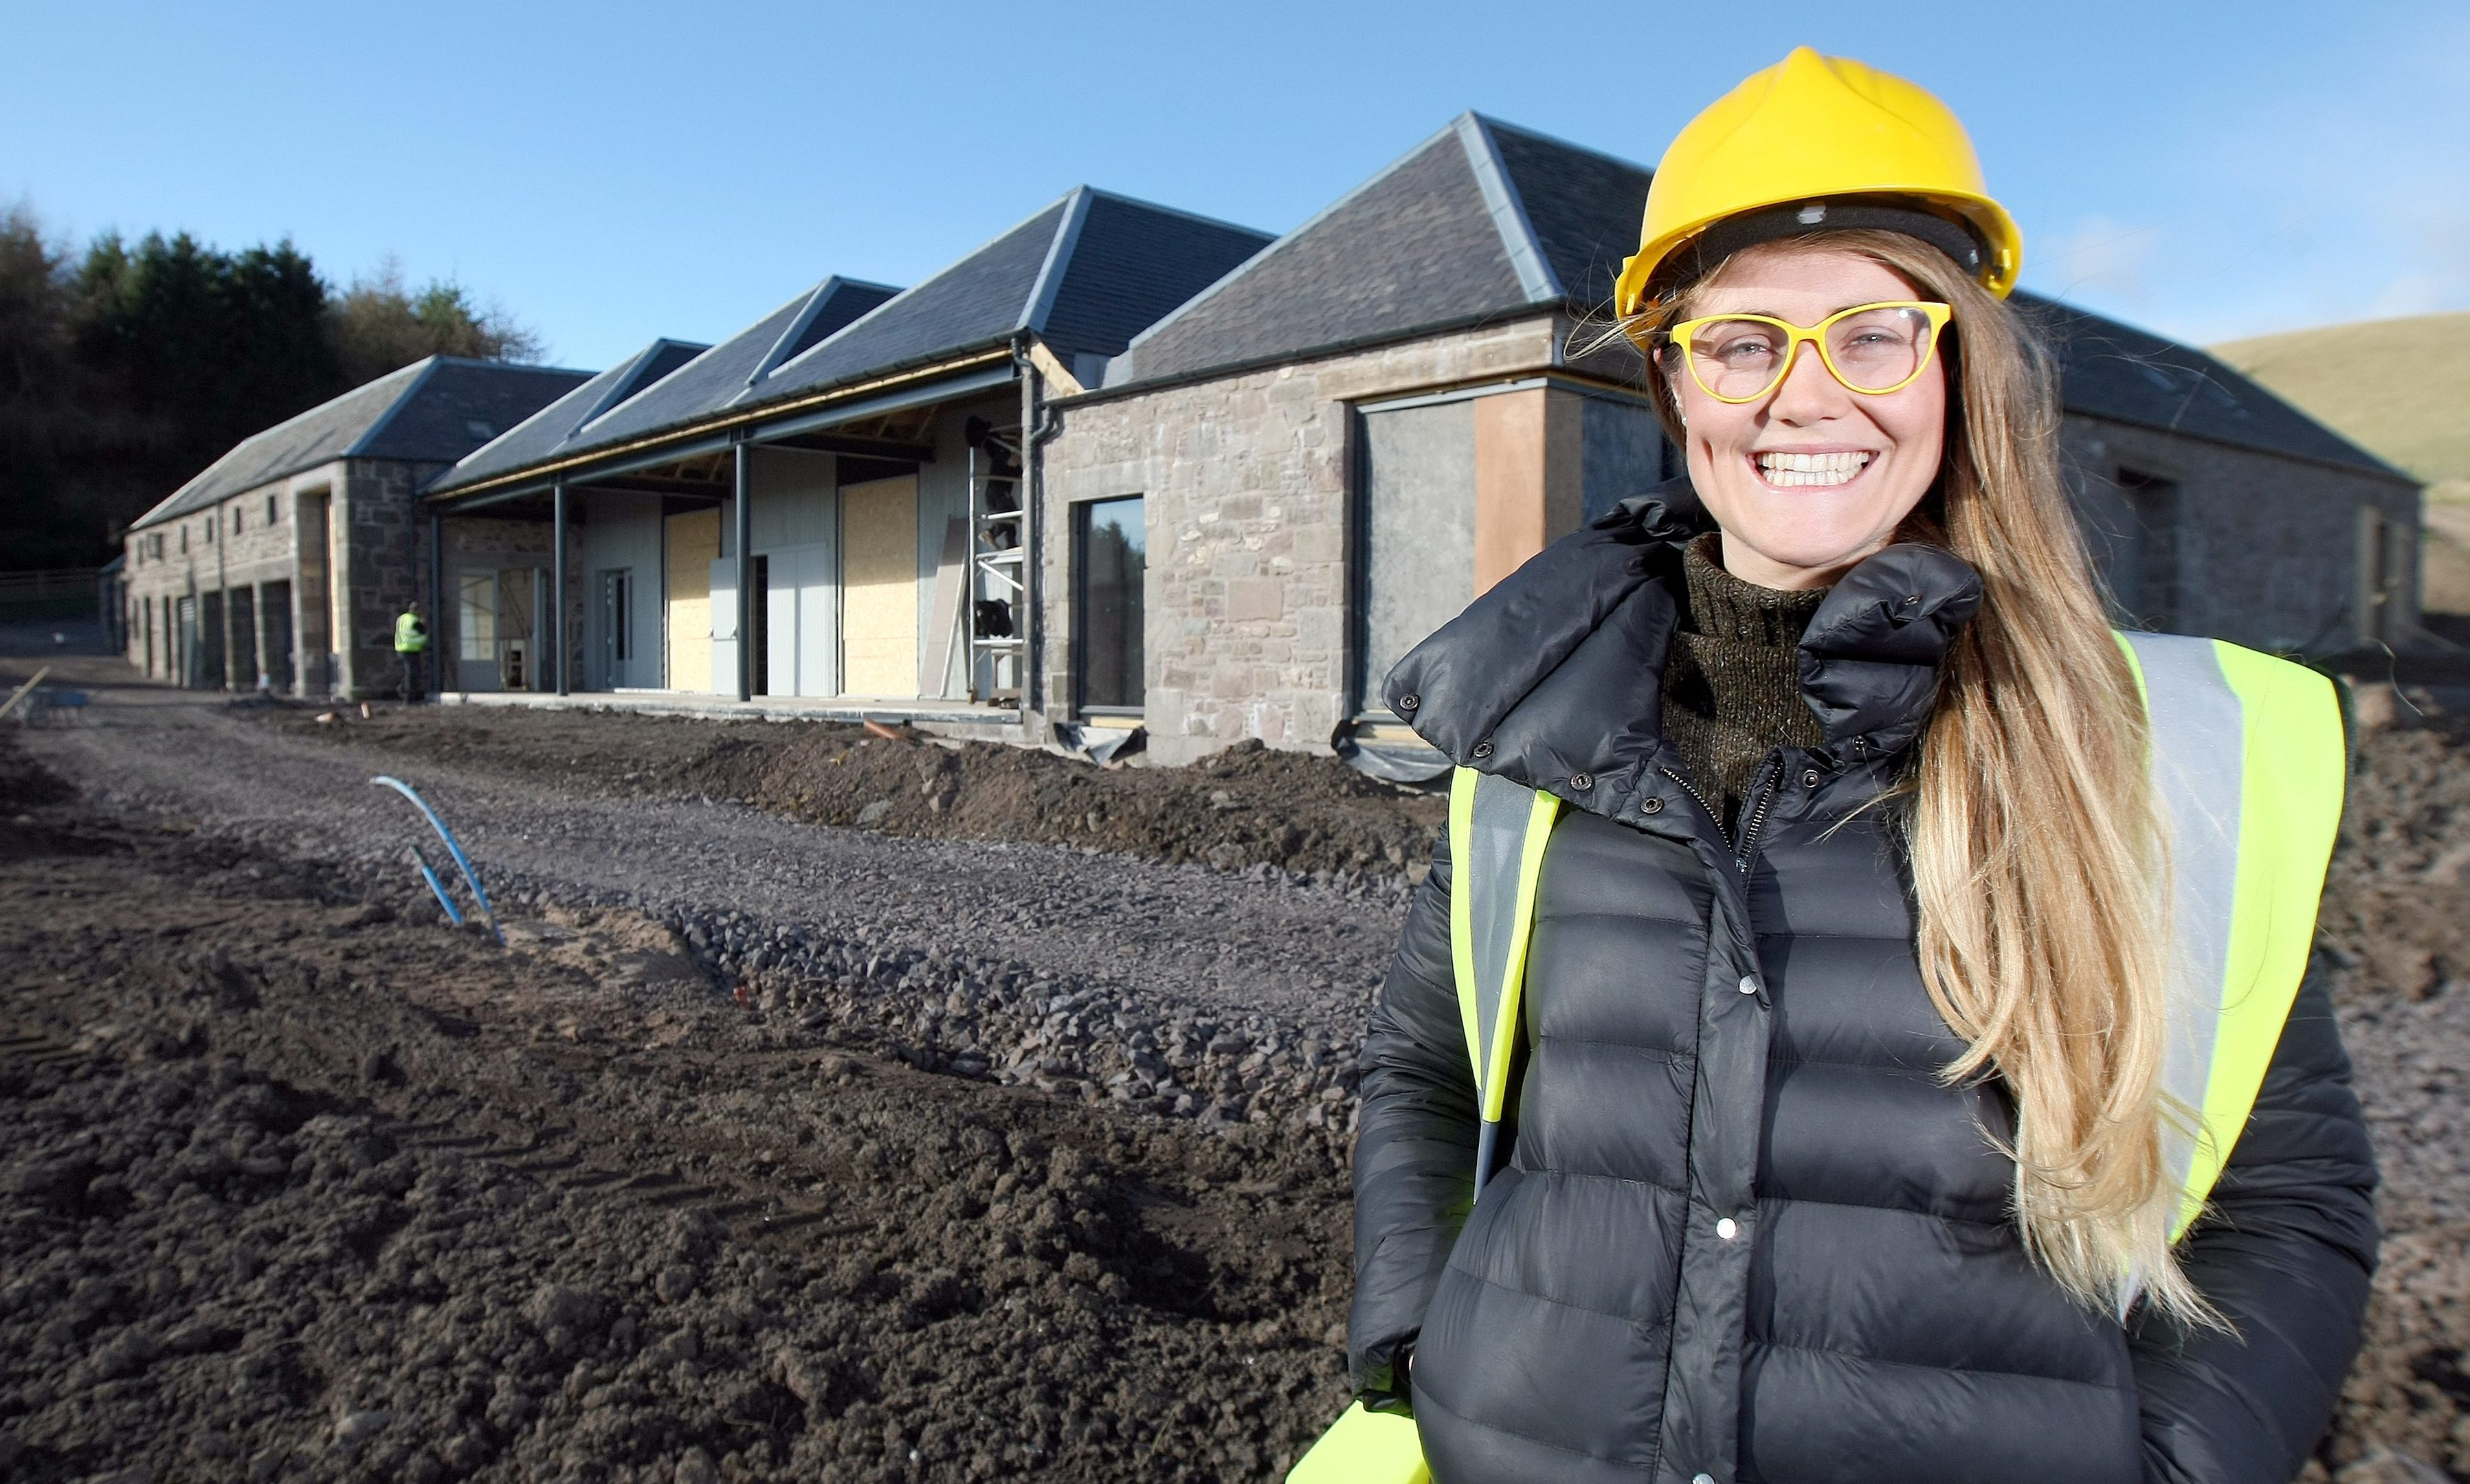 One of Scotland's newest rural event venues is being developed high on the south-facing hills overlooking the Carse of Gowrie.